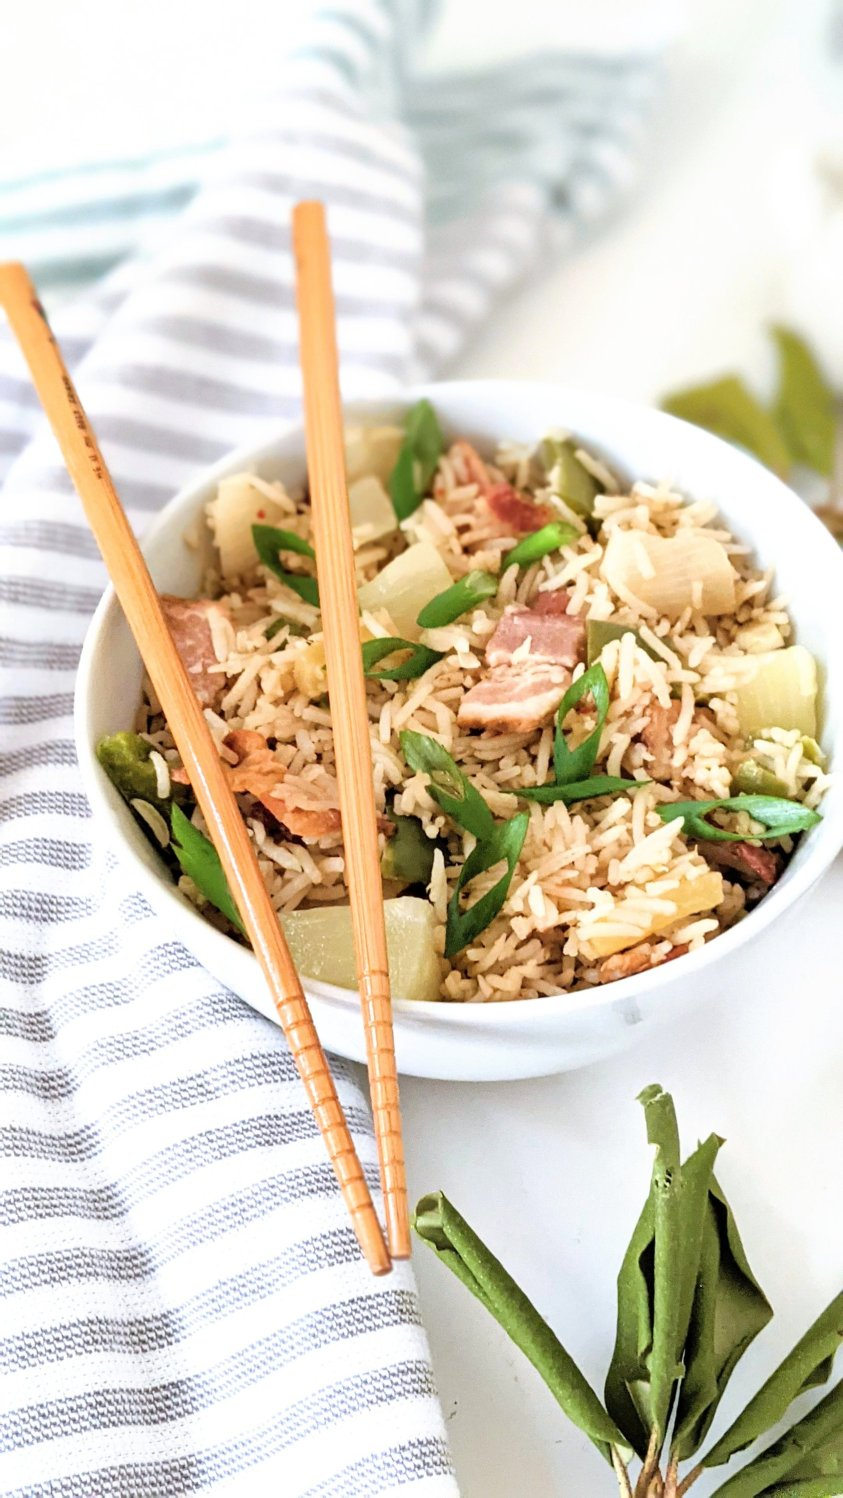 gluten free bacon fried rice with pineapple recipe easy dinners with bacon and rice recipes can be vegetarian or vegan option for fried rice at home with pineapple